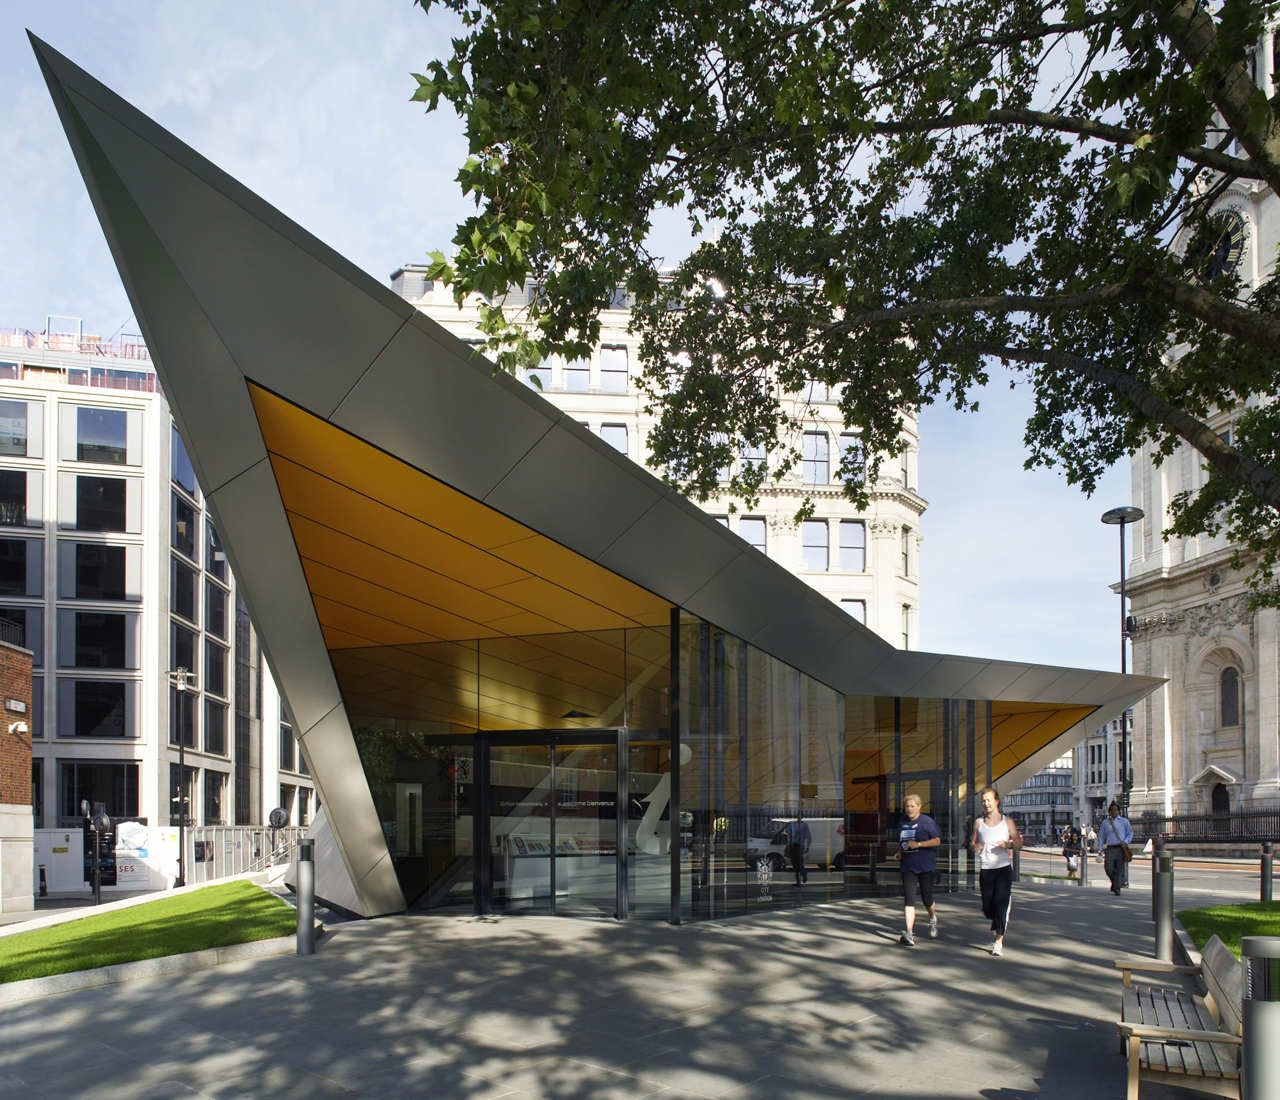 Information Centre by Make Architects for City of London